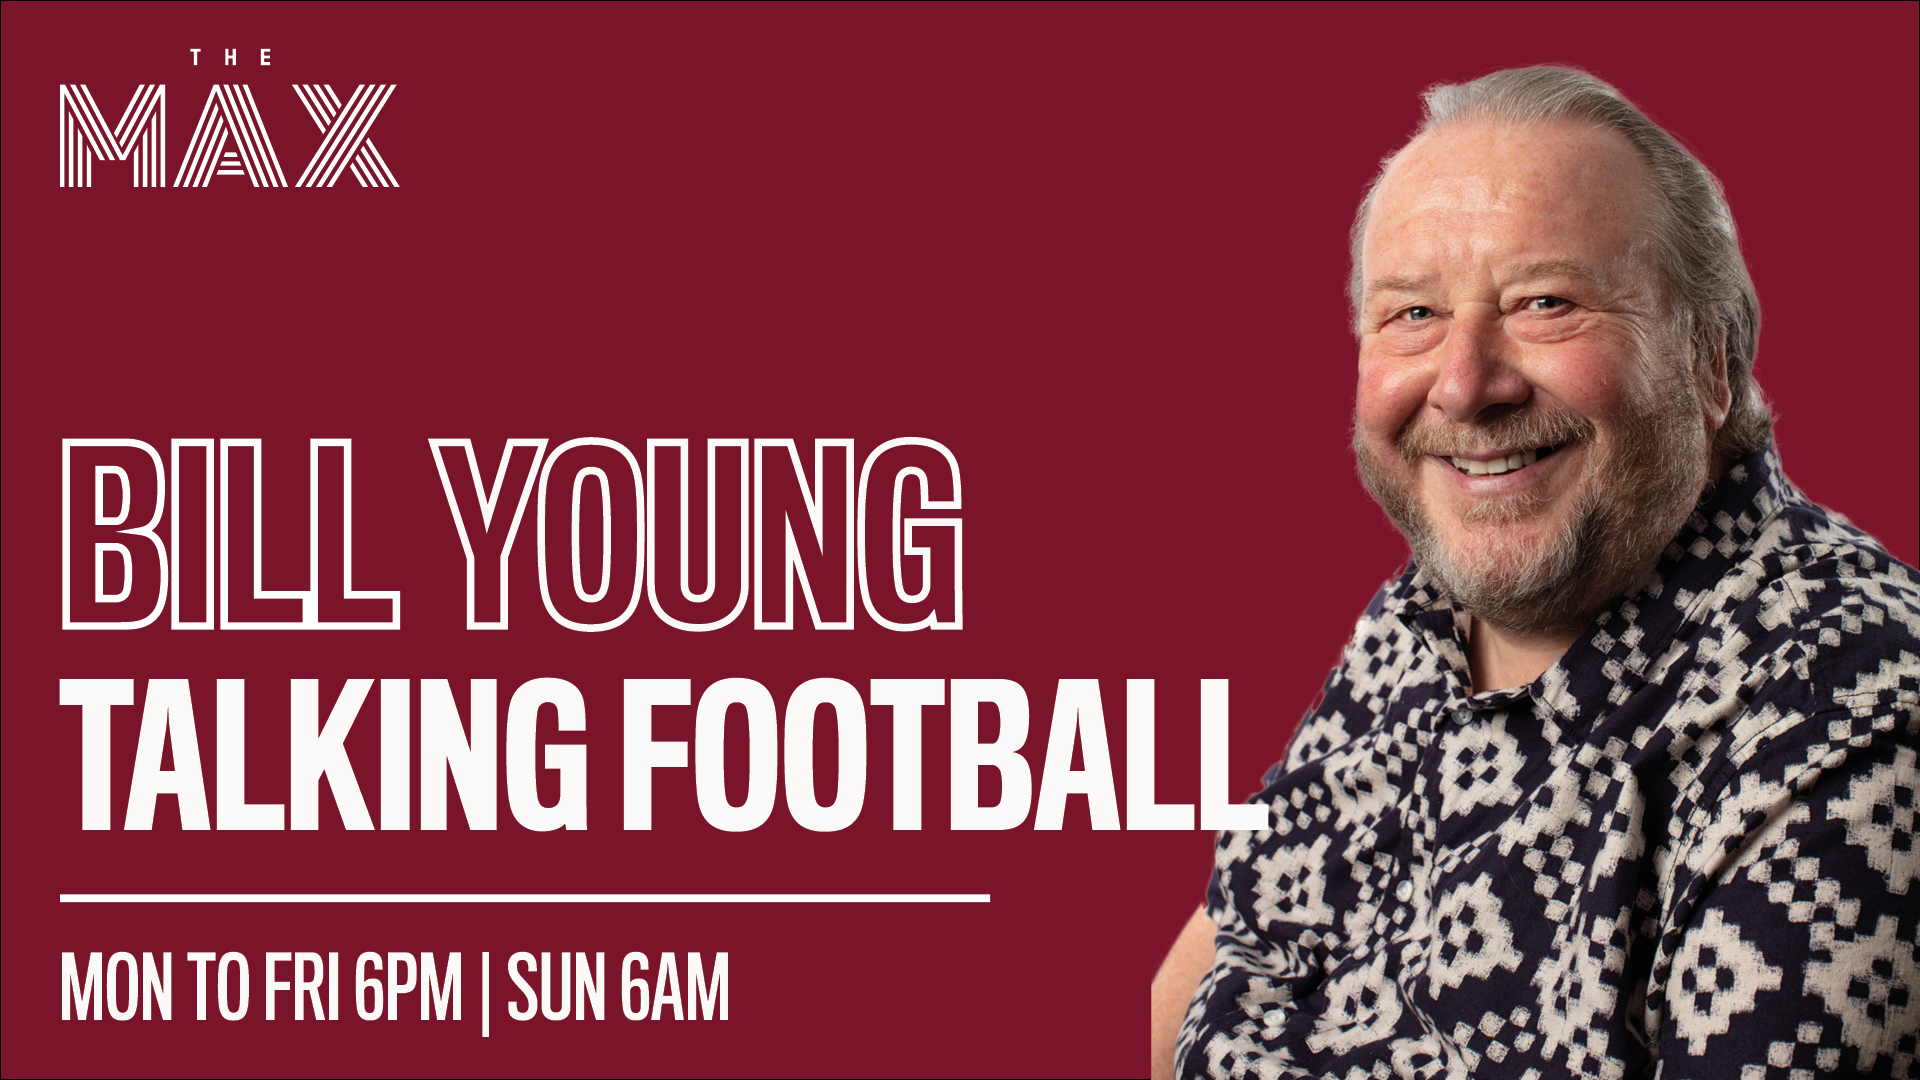 Talking Football with Bill Young - Thursday 8th of October - Episode 48